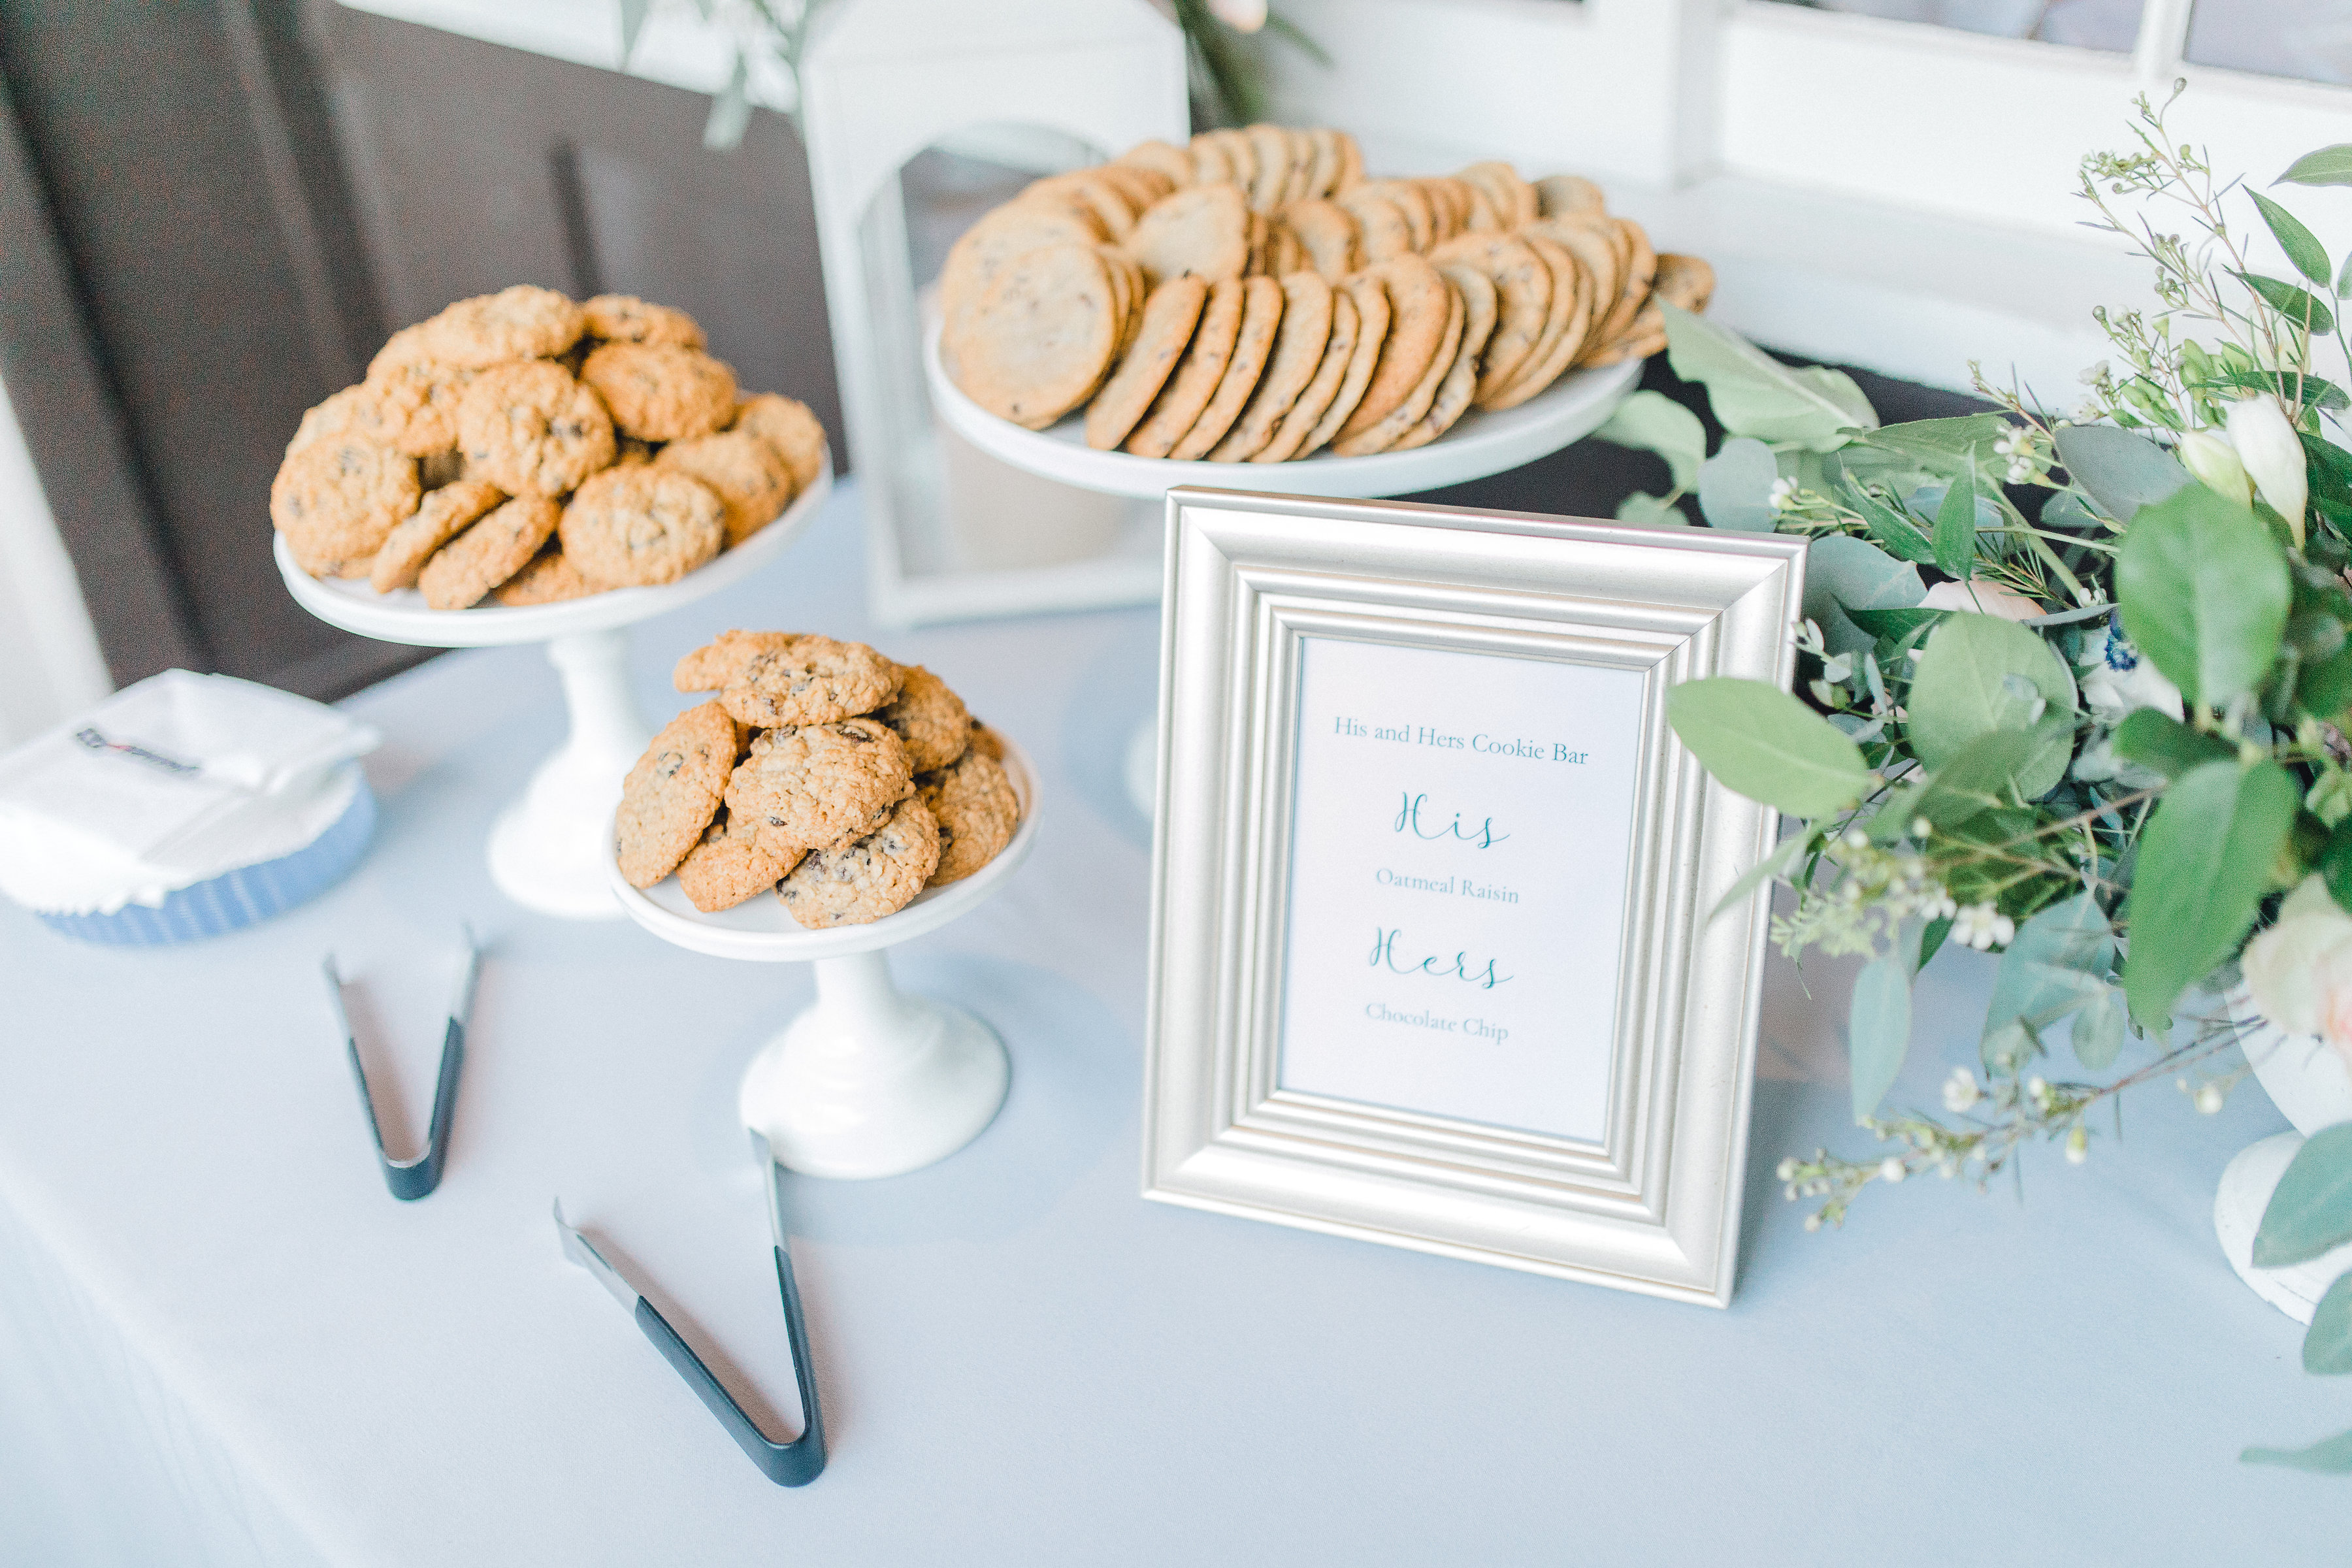 Seattle wedding, Washington wedding, bride and groom, PNW wedding, wedding inspiration, wedding flowers, Seattle bride, outdoor wedding, garden wedding, wedding decor, wedding decorations, wedding desserts, wedding cookies, His and Her cookies